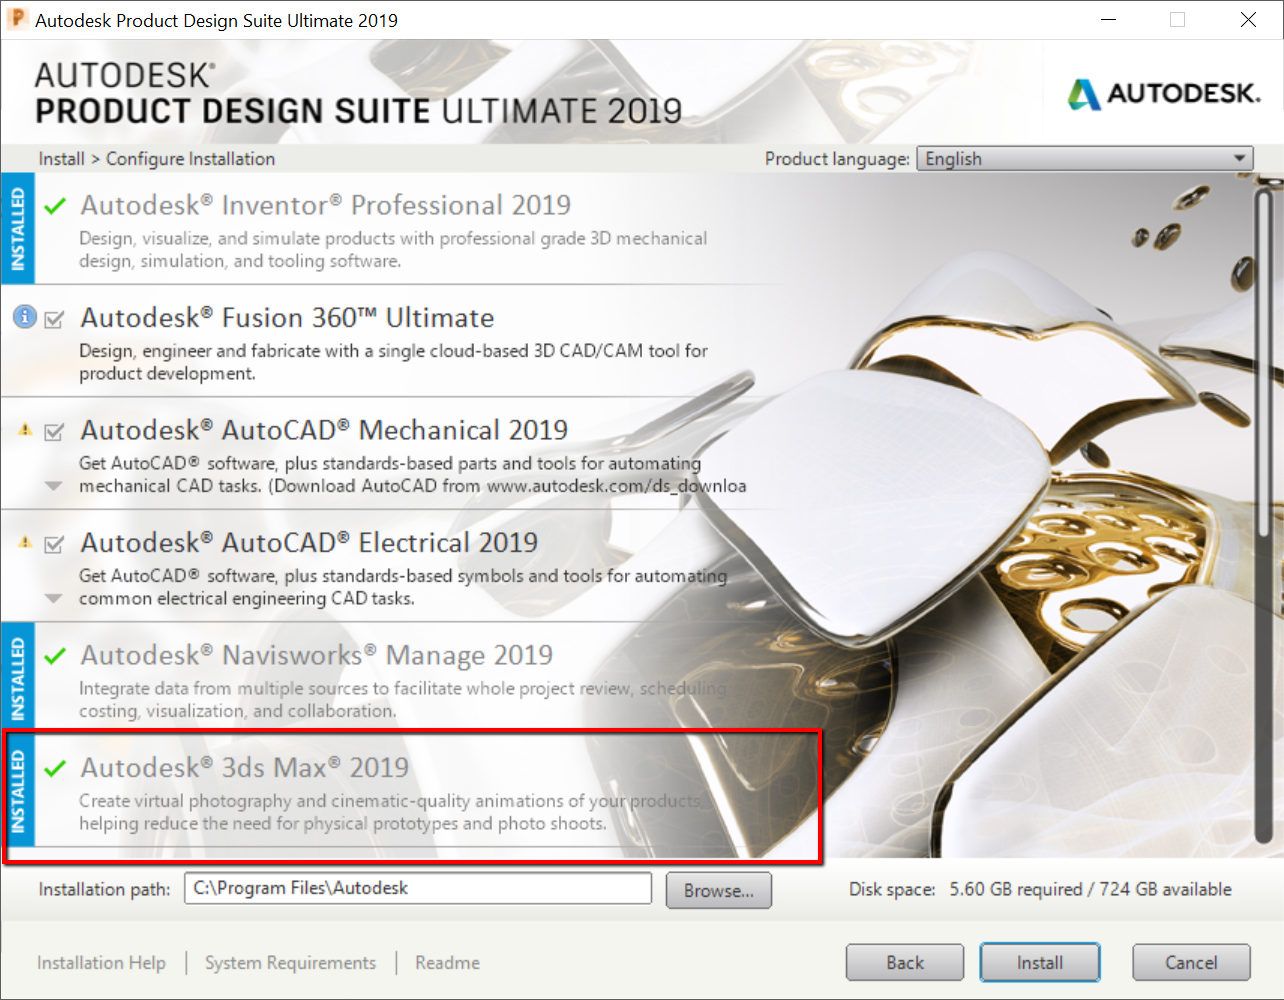 Where To Buy Autodesk Product Design Suite Ultimate 2019